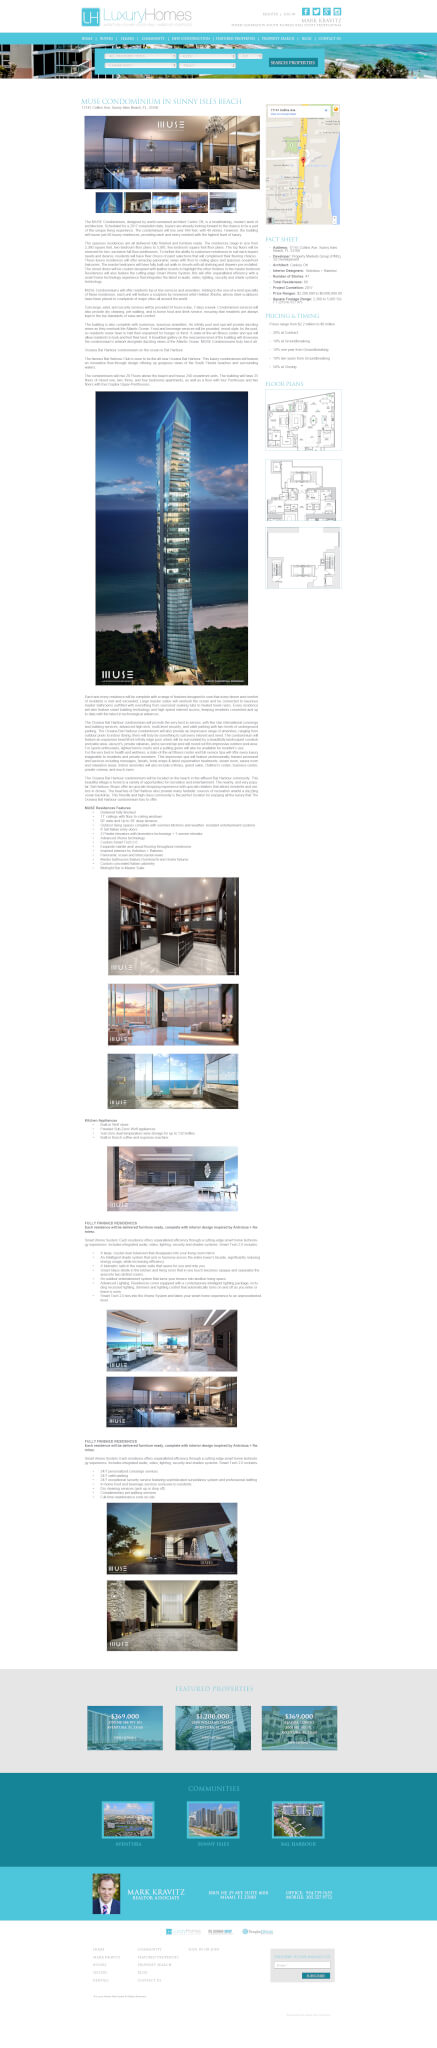 wordpress real estate web site Miami red cat studios